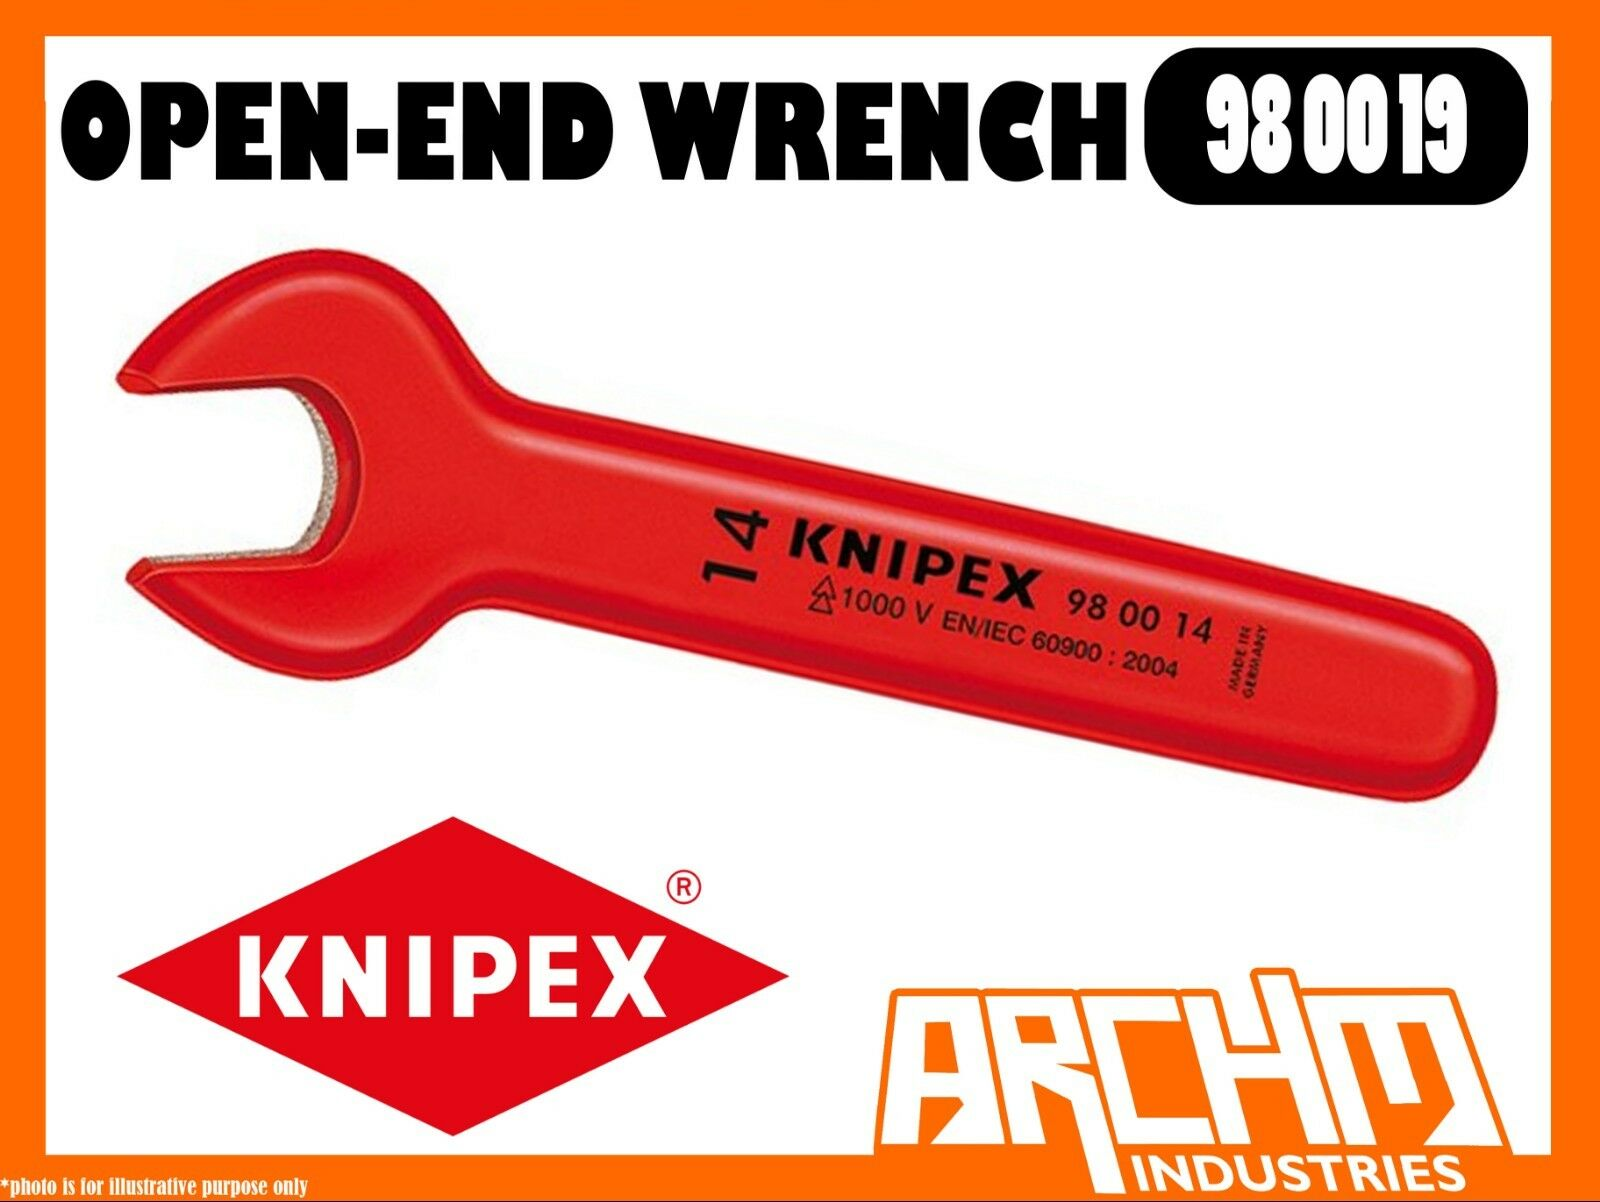 KNIPEX 980019 - OPEN-END WRENCH - 165MM - 19MM - JAW 15° ANGLED HEXAGON 1000V